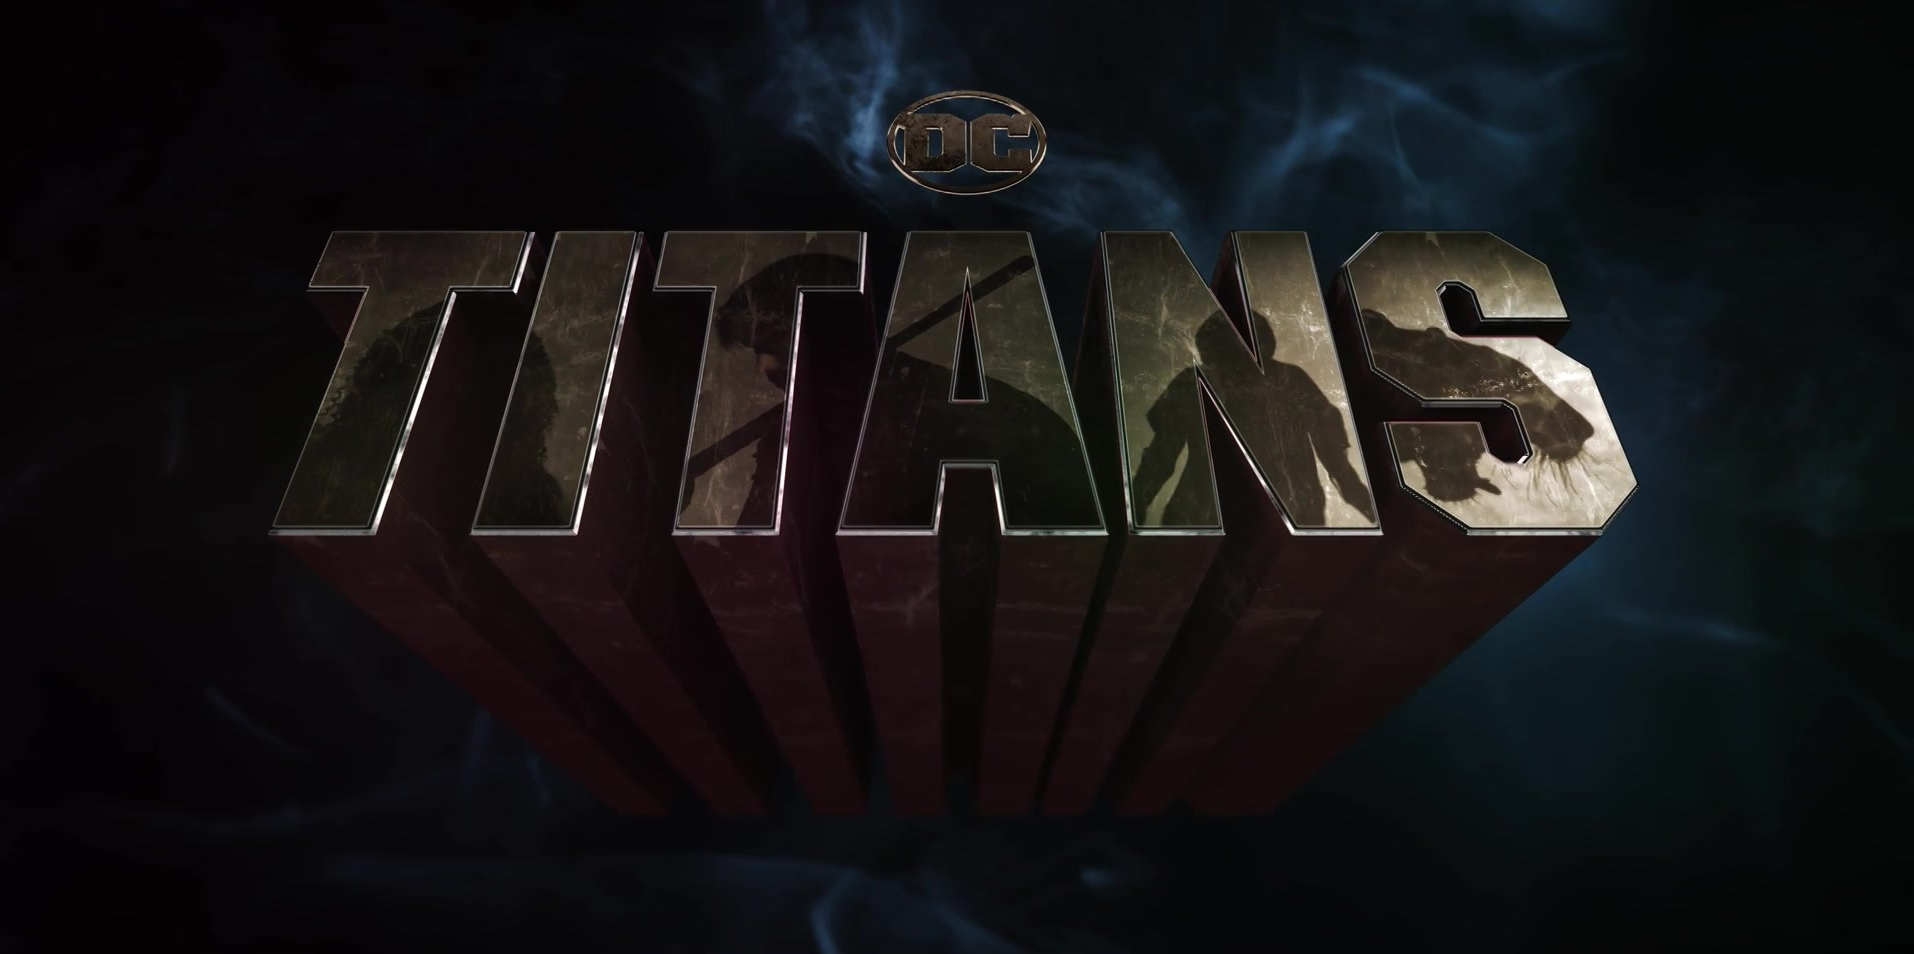 Titans (TV Series) Episode: Ghosts